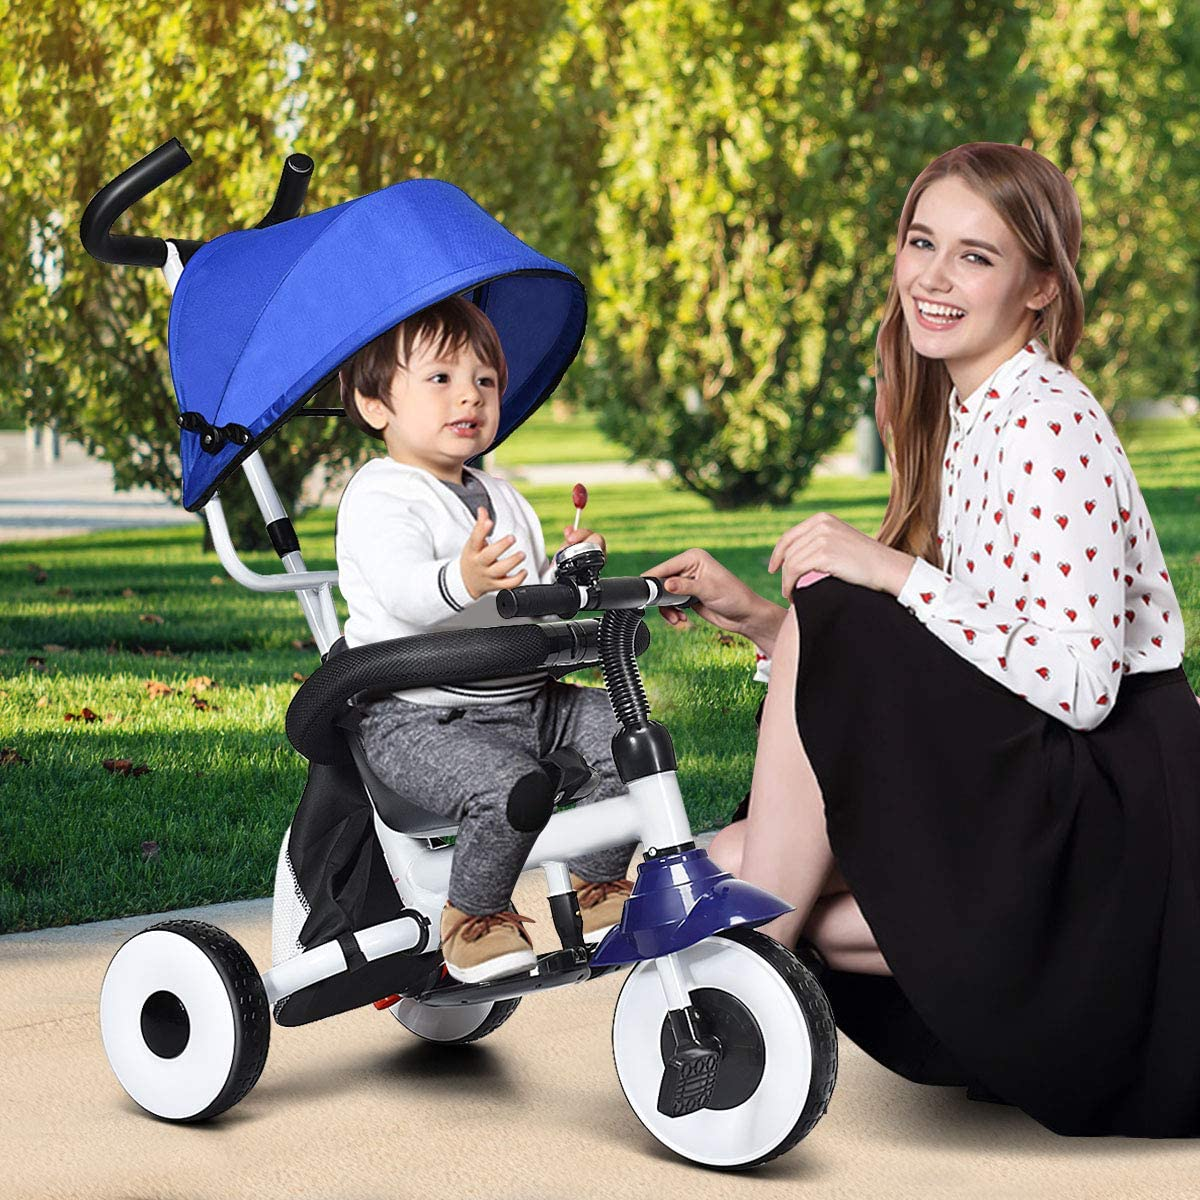 Amazon.com: BABY JOY 4 en 1 niños triciclo plegable bebé ...